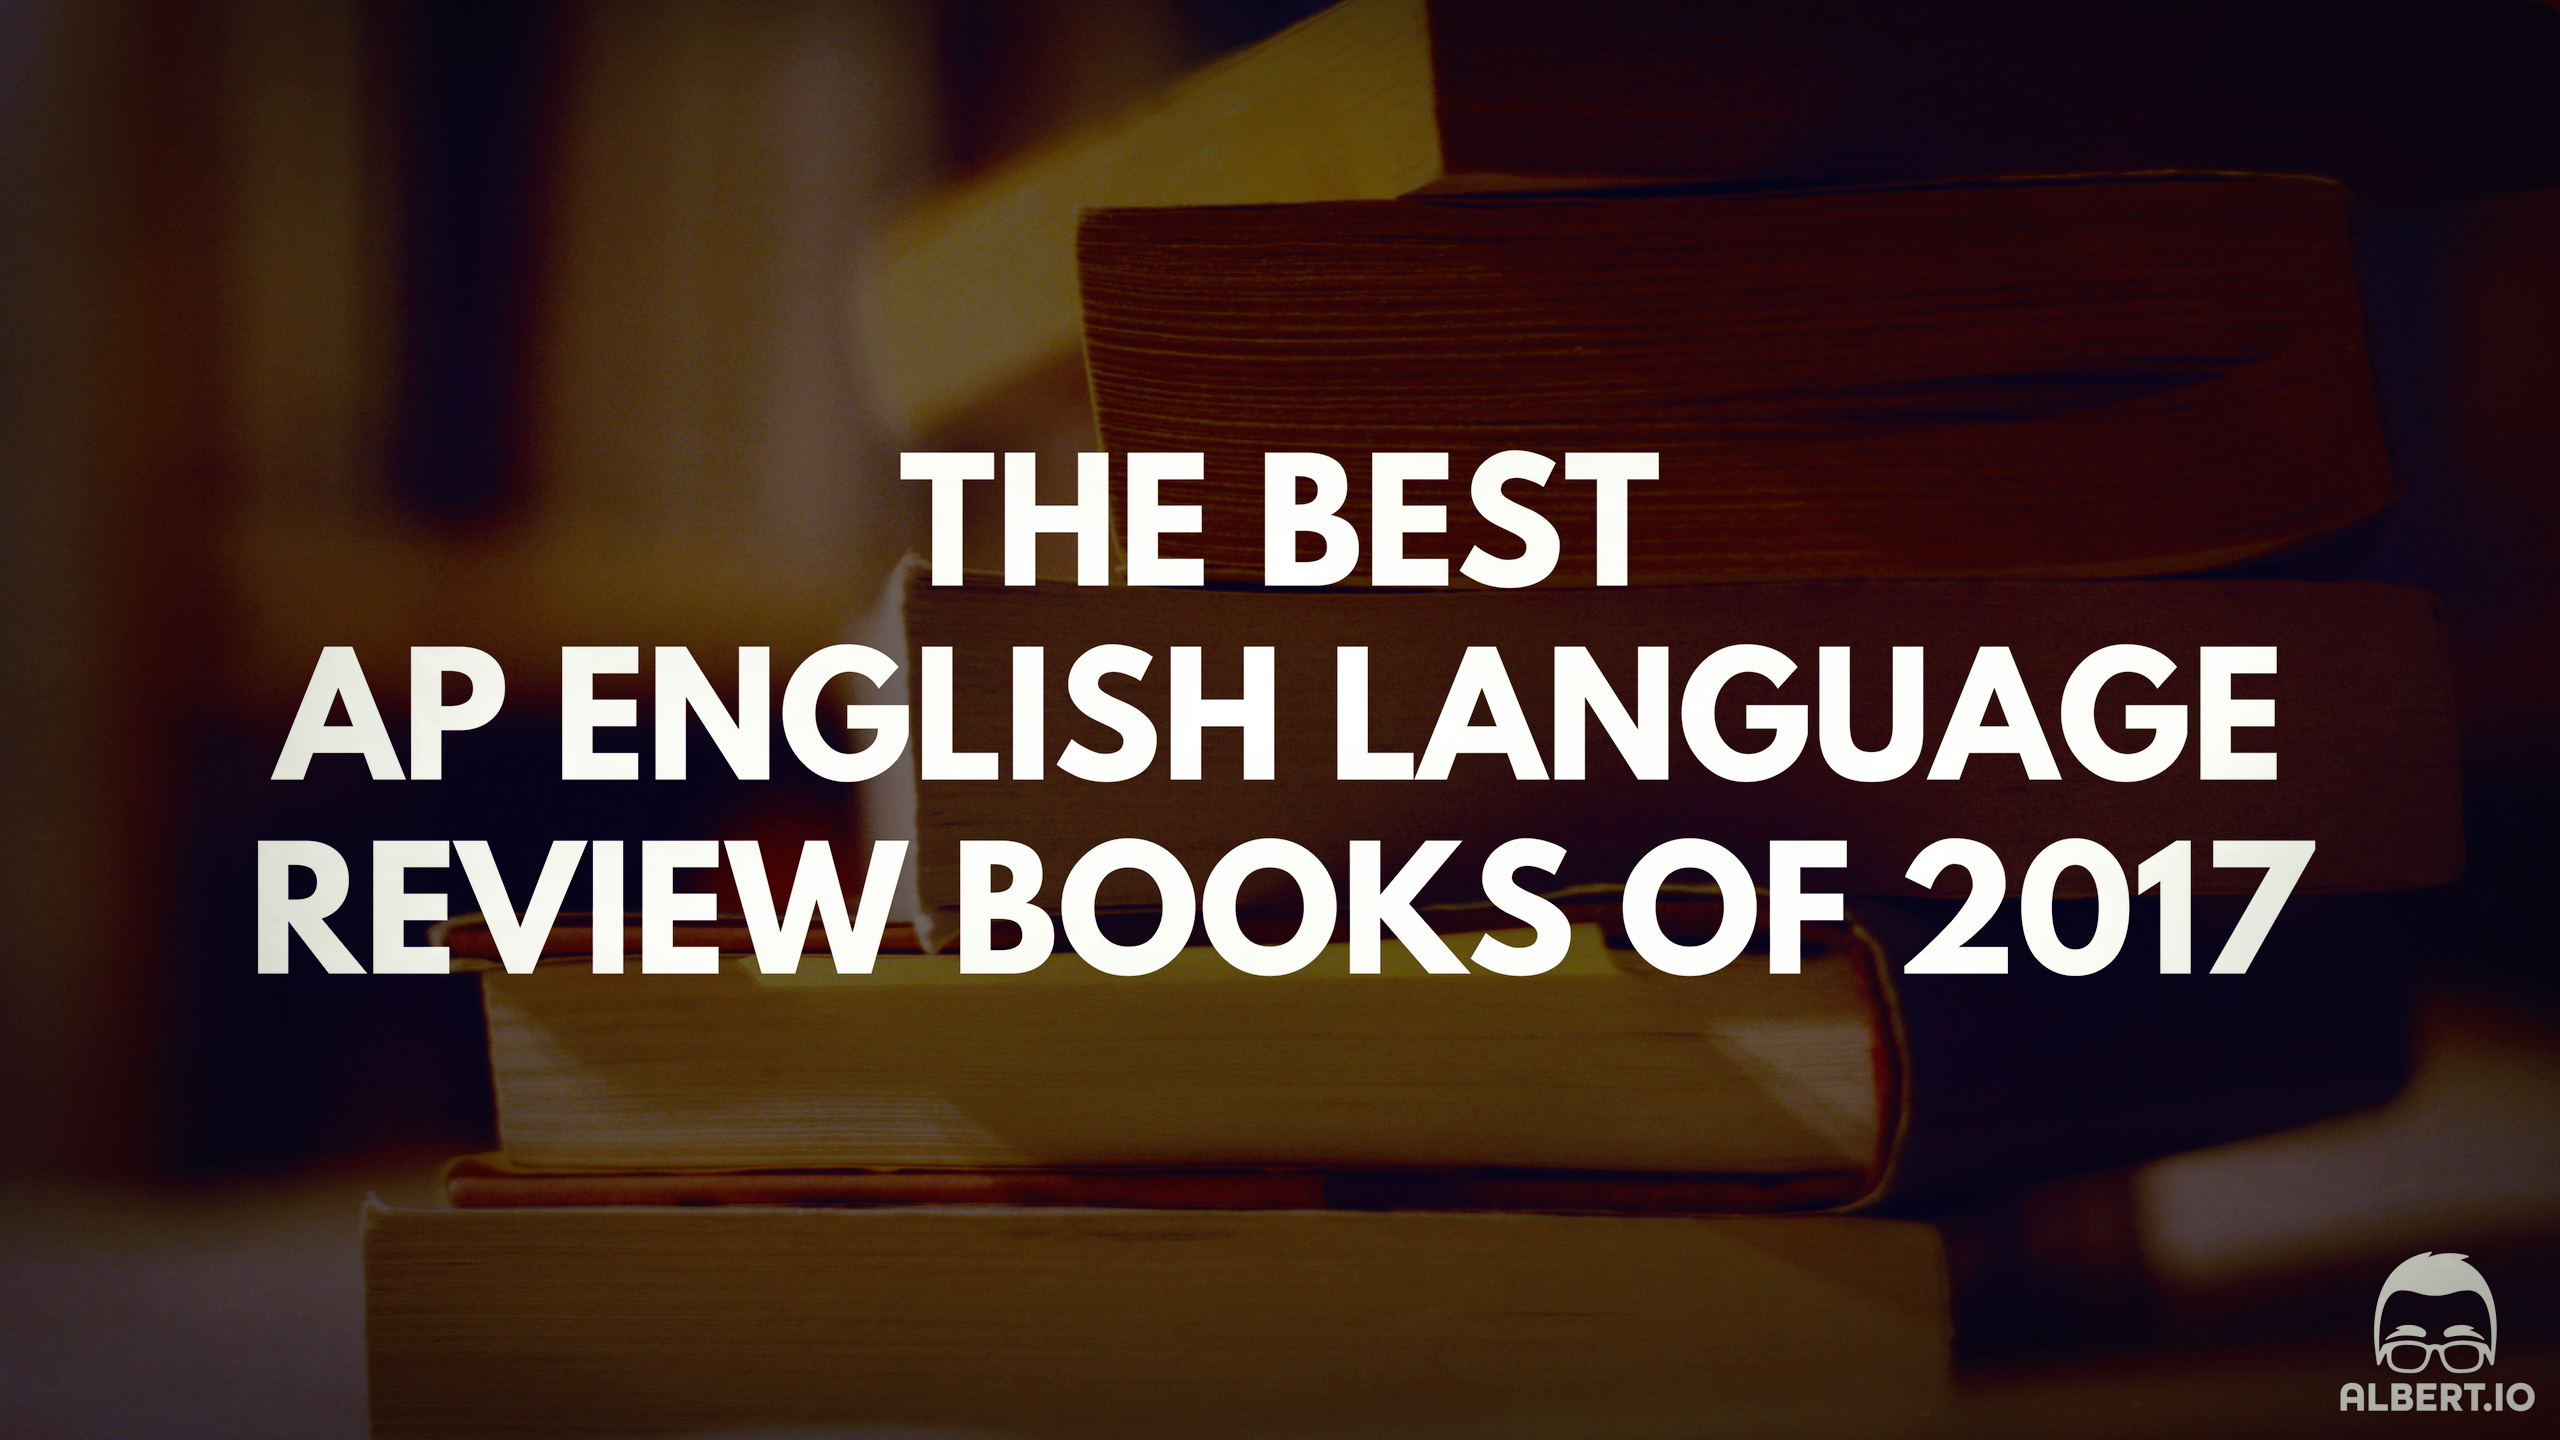 The Best AP English Language Review Books of 2017 https://www.albert.io/blog/best-ap-english-language-review-books-of-2017/